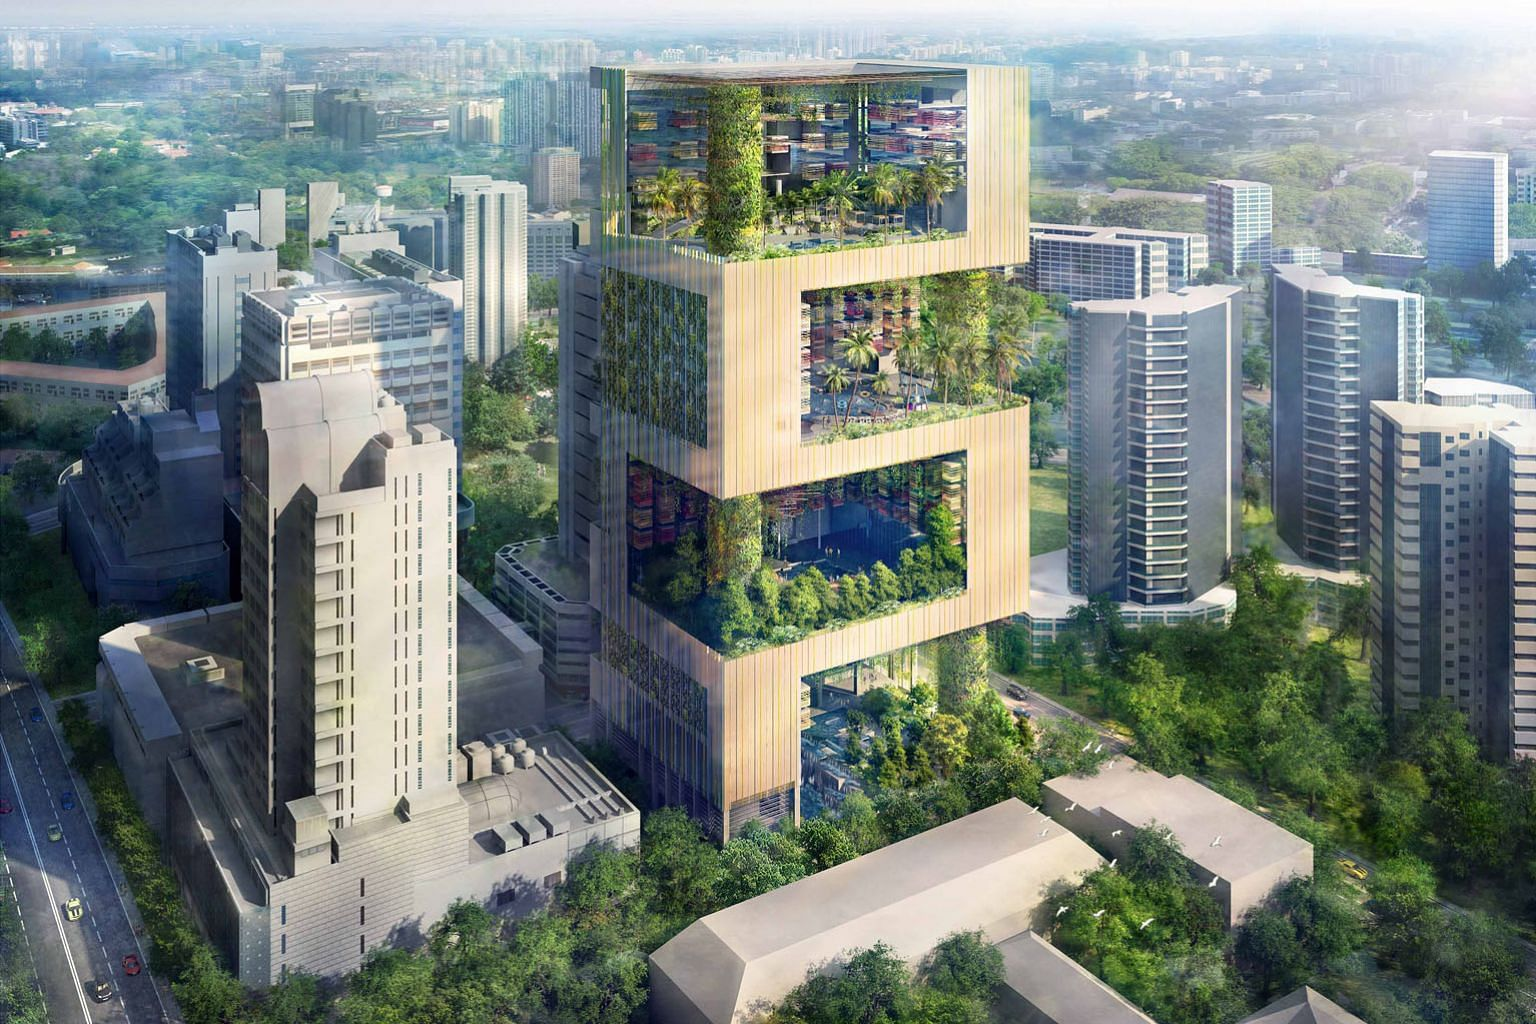 Pan Pacific Orchard was closed for redevelopment in 2018 and is targeted to reopen next year. The hotel will set a new benchmark for green hospitality, with self-sustaining sky terraces using rainwater harvesting systems and solar cells. PHOTO: UOL G